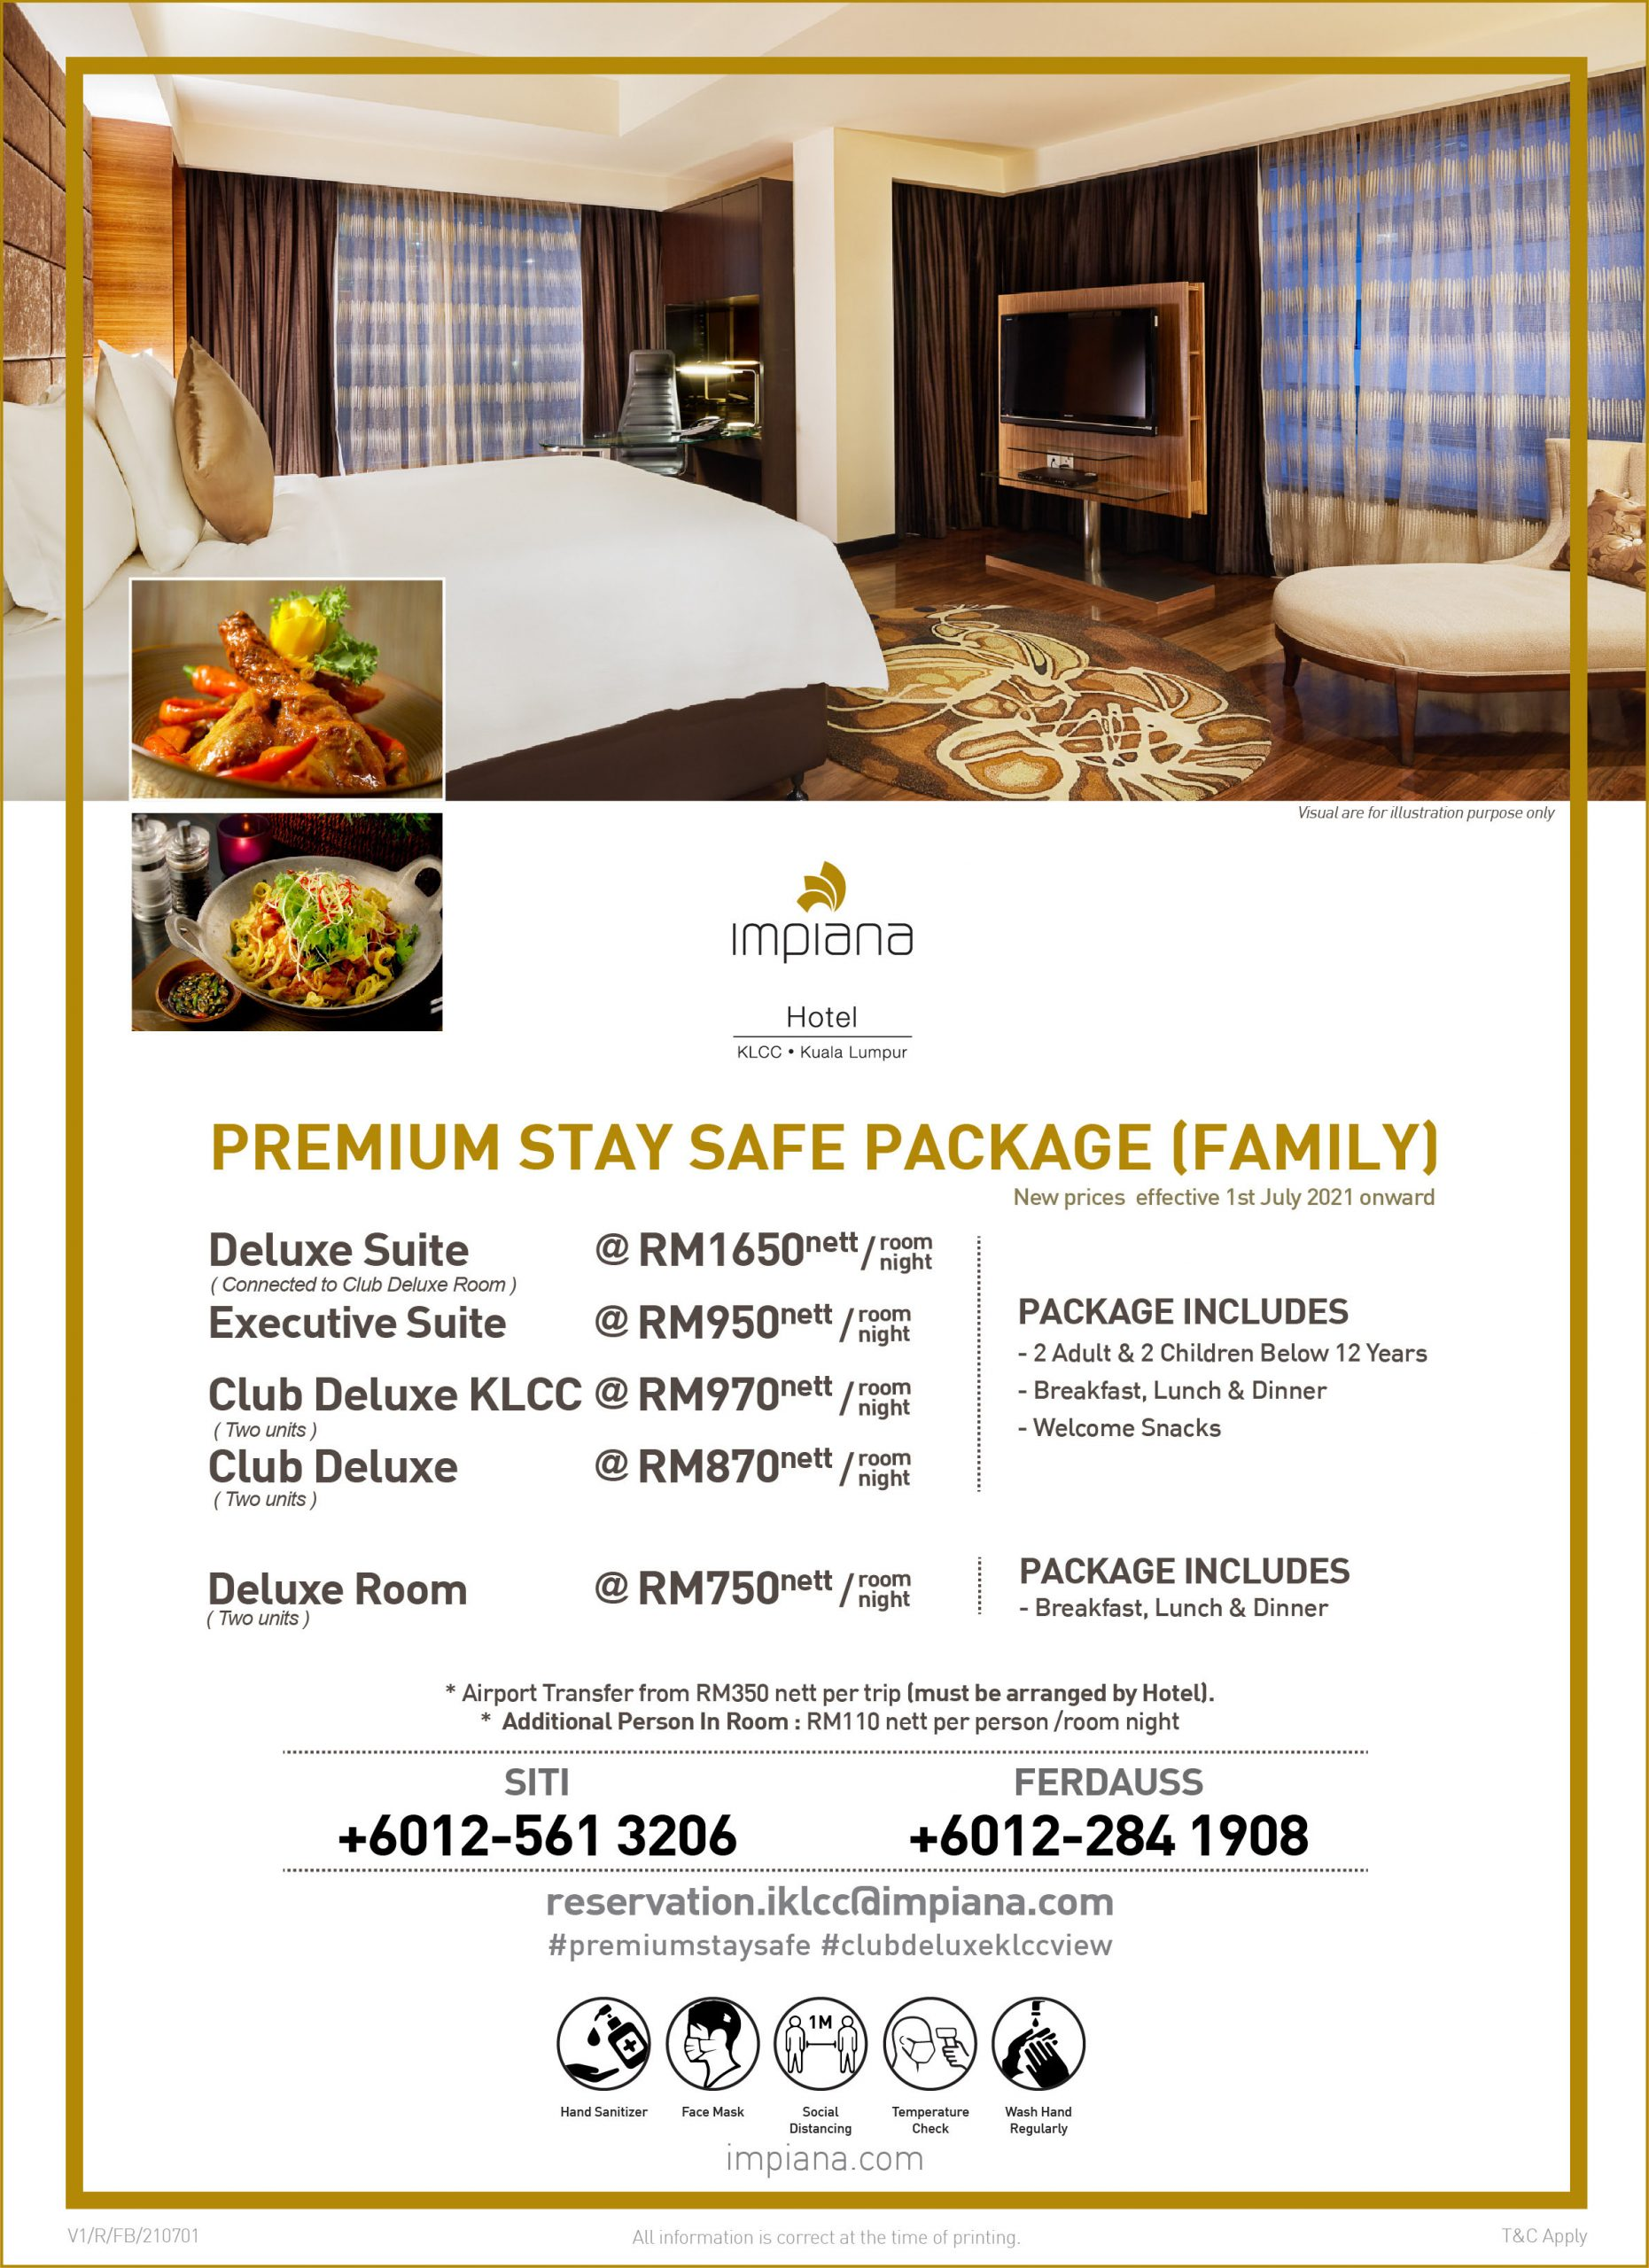 Premium Stay Safe Package (Family)